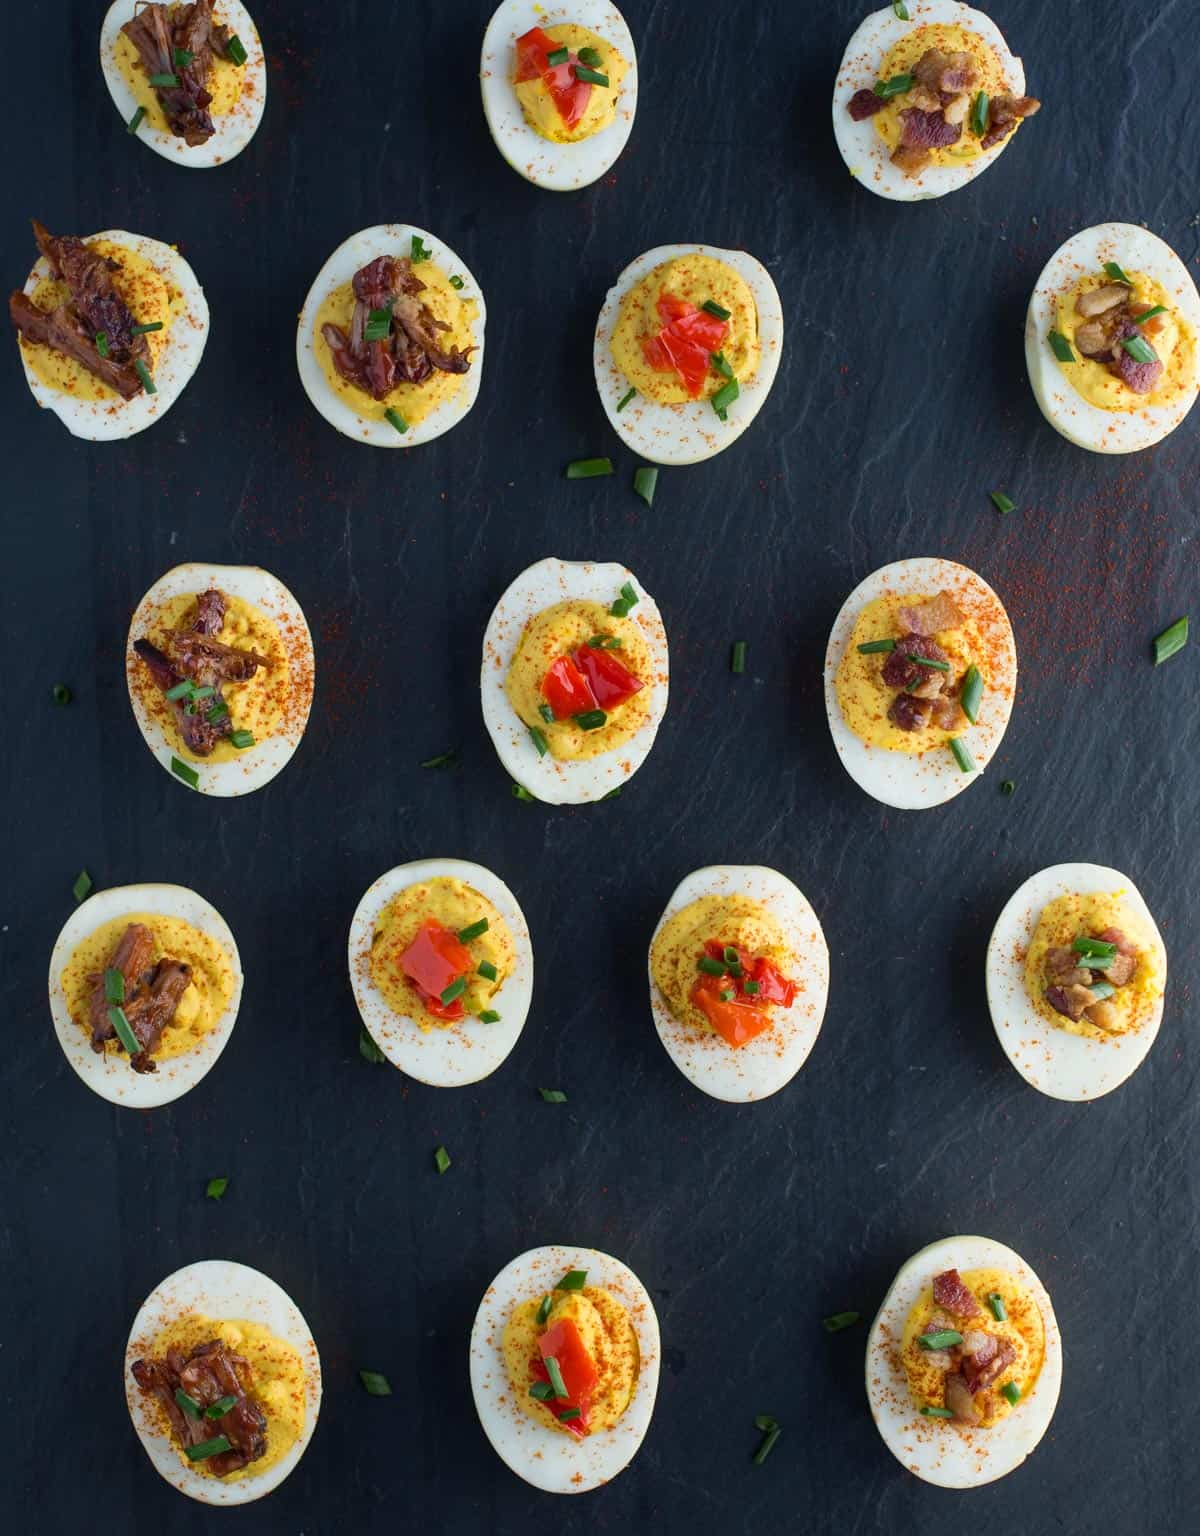 A platter full of smoked deviled eggs topped with brisket, pickled peppers, and crispy bacon